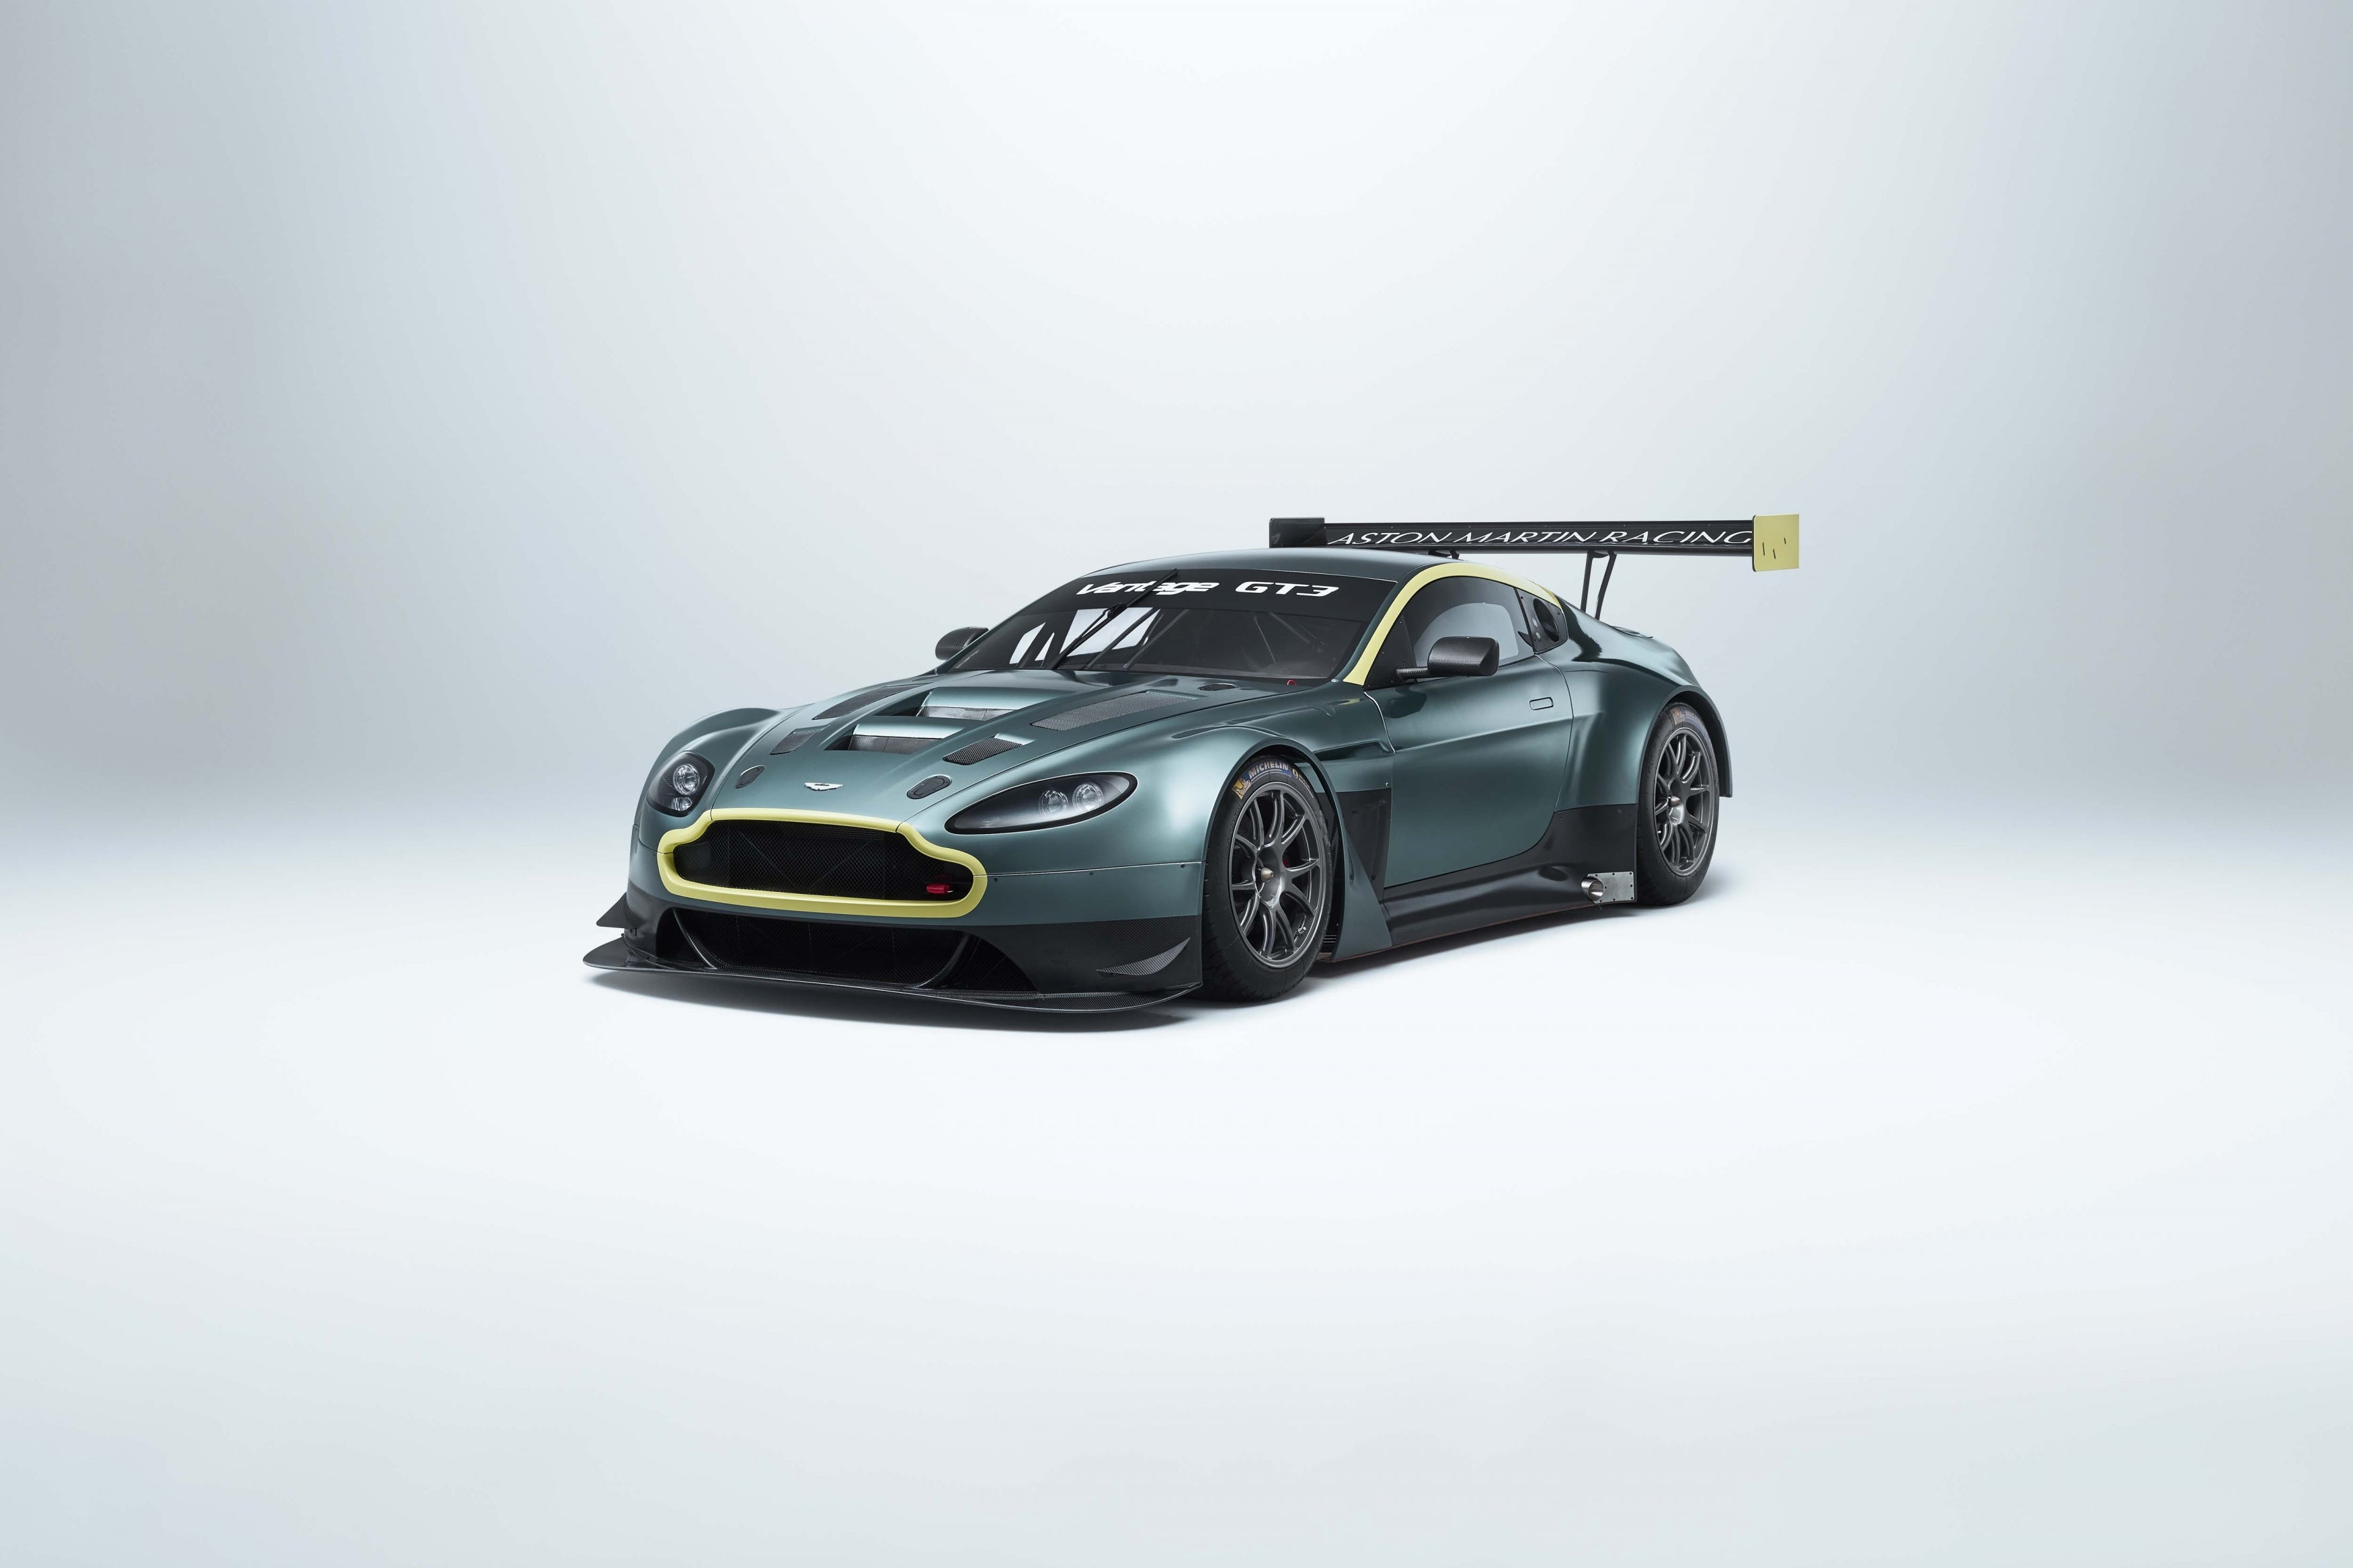 You Can Buy The Final Previous Gen Aston Martin Vantage Gte Gt3 Gt4 Race Cars As A Package Deal